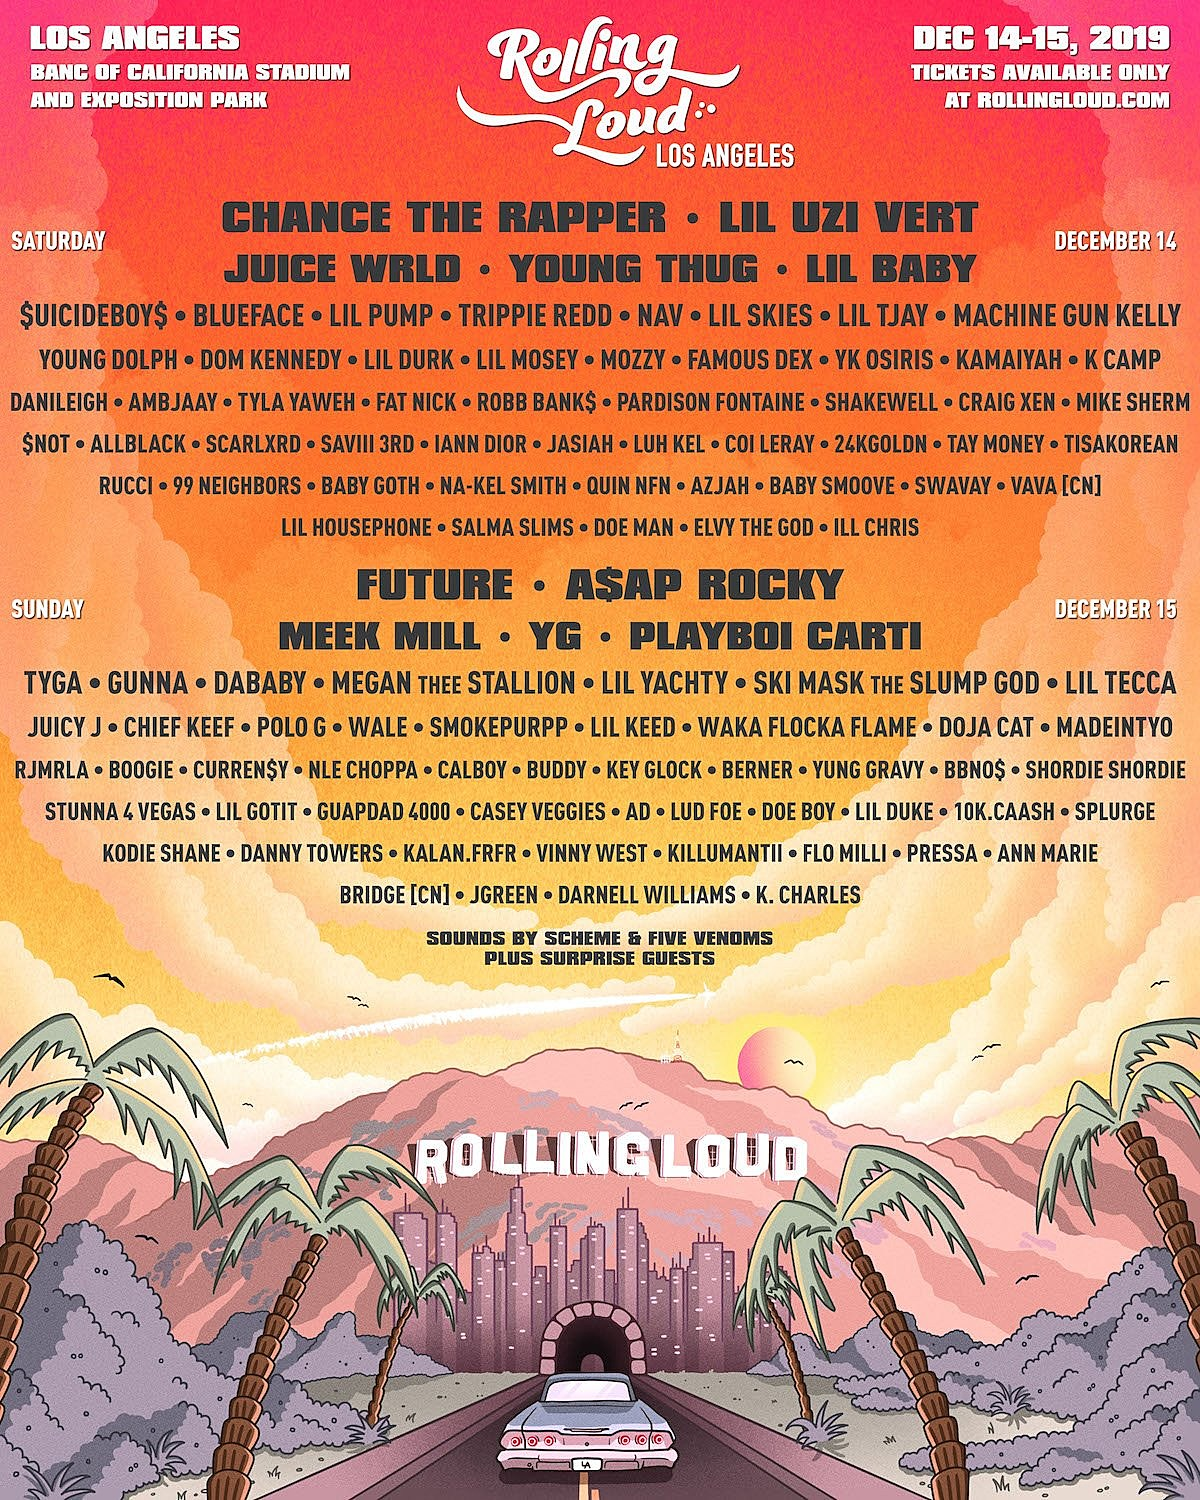 Rolling Loud Los Angeles 2019 lineup (Chance, Lil Uzi Vert, Future, A$AP Rocky, more)